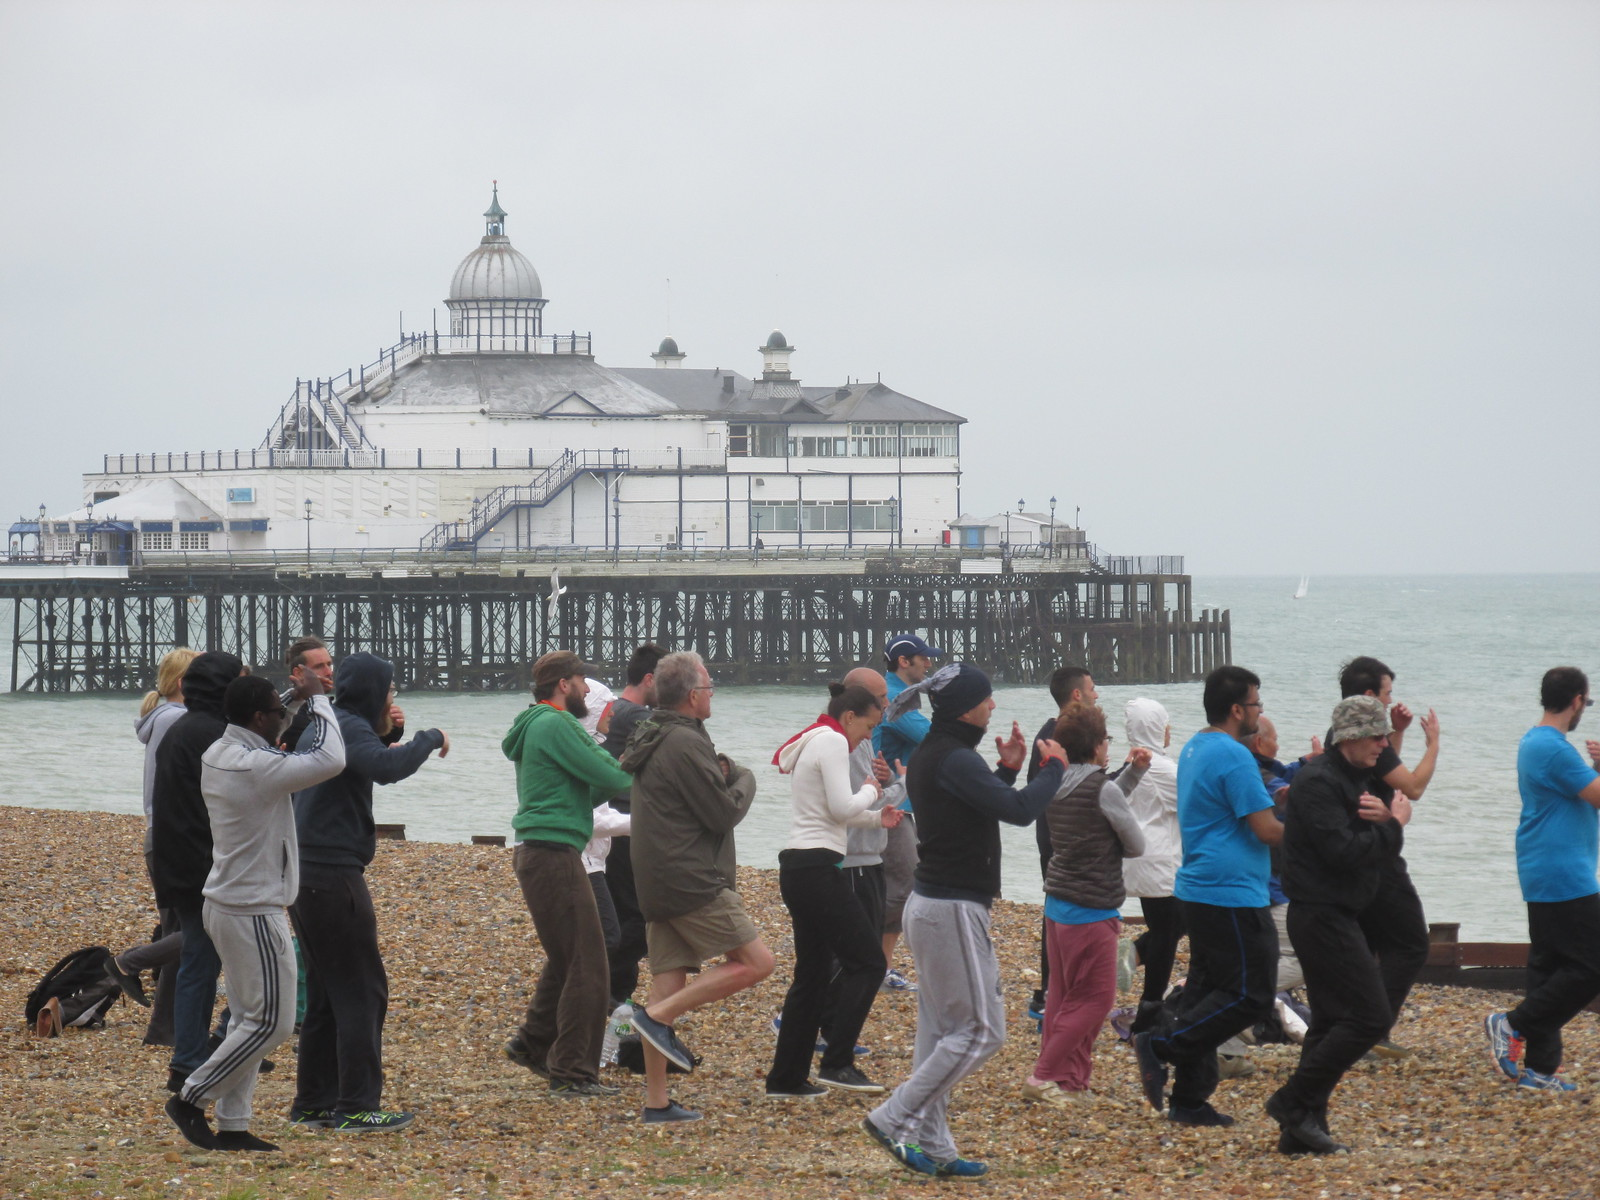 July 12, 2015: Eastbourne to East Dean Martial arts class on Eastbourne beach